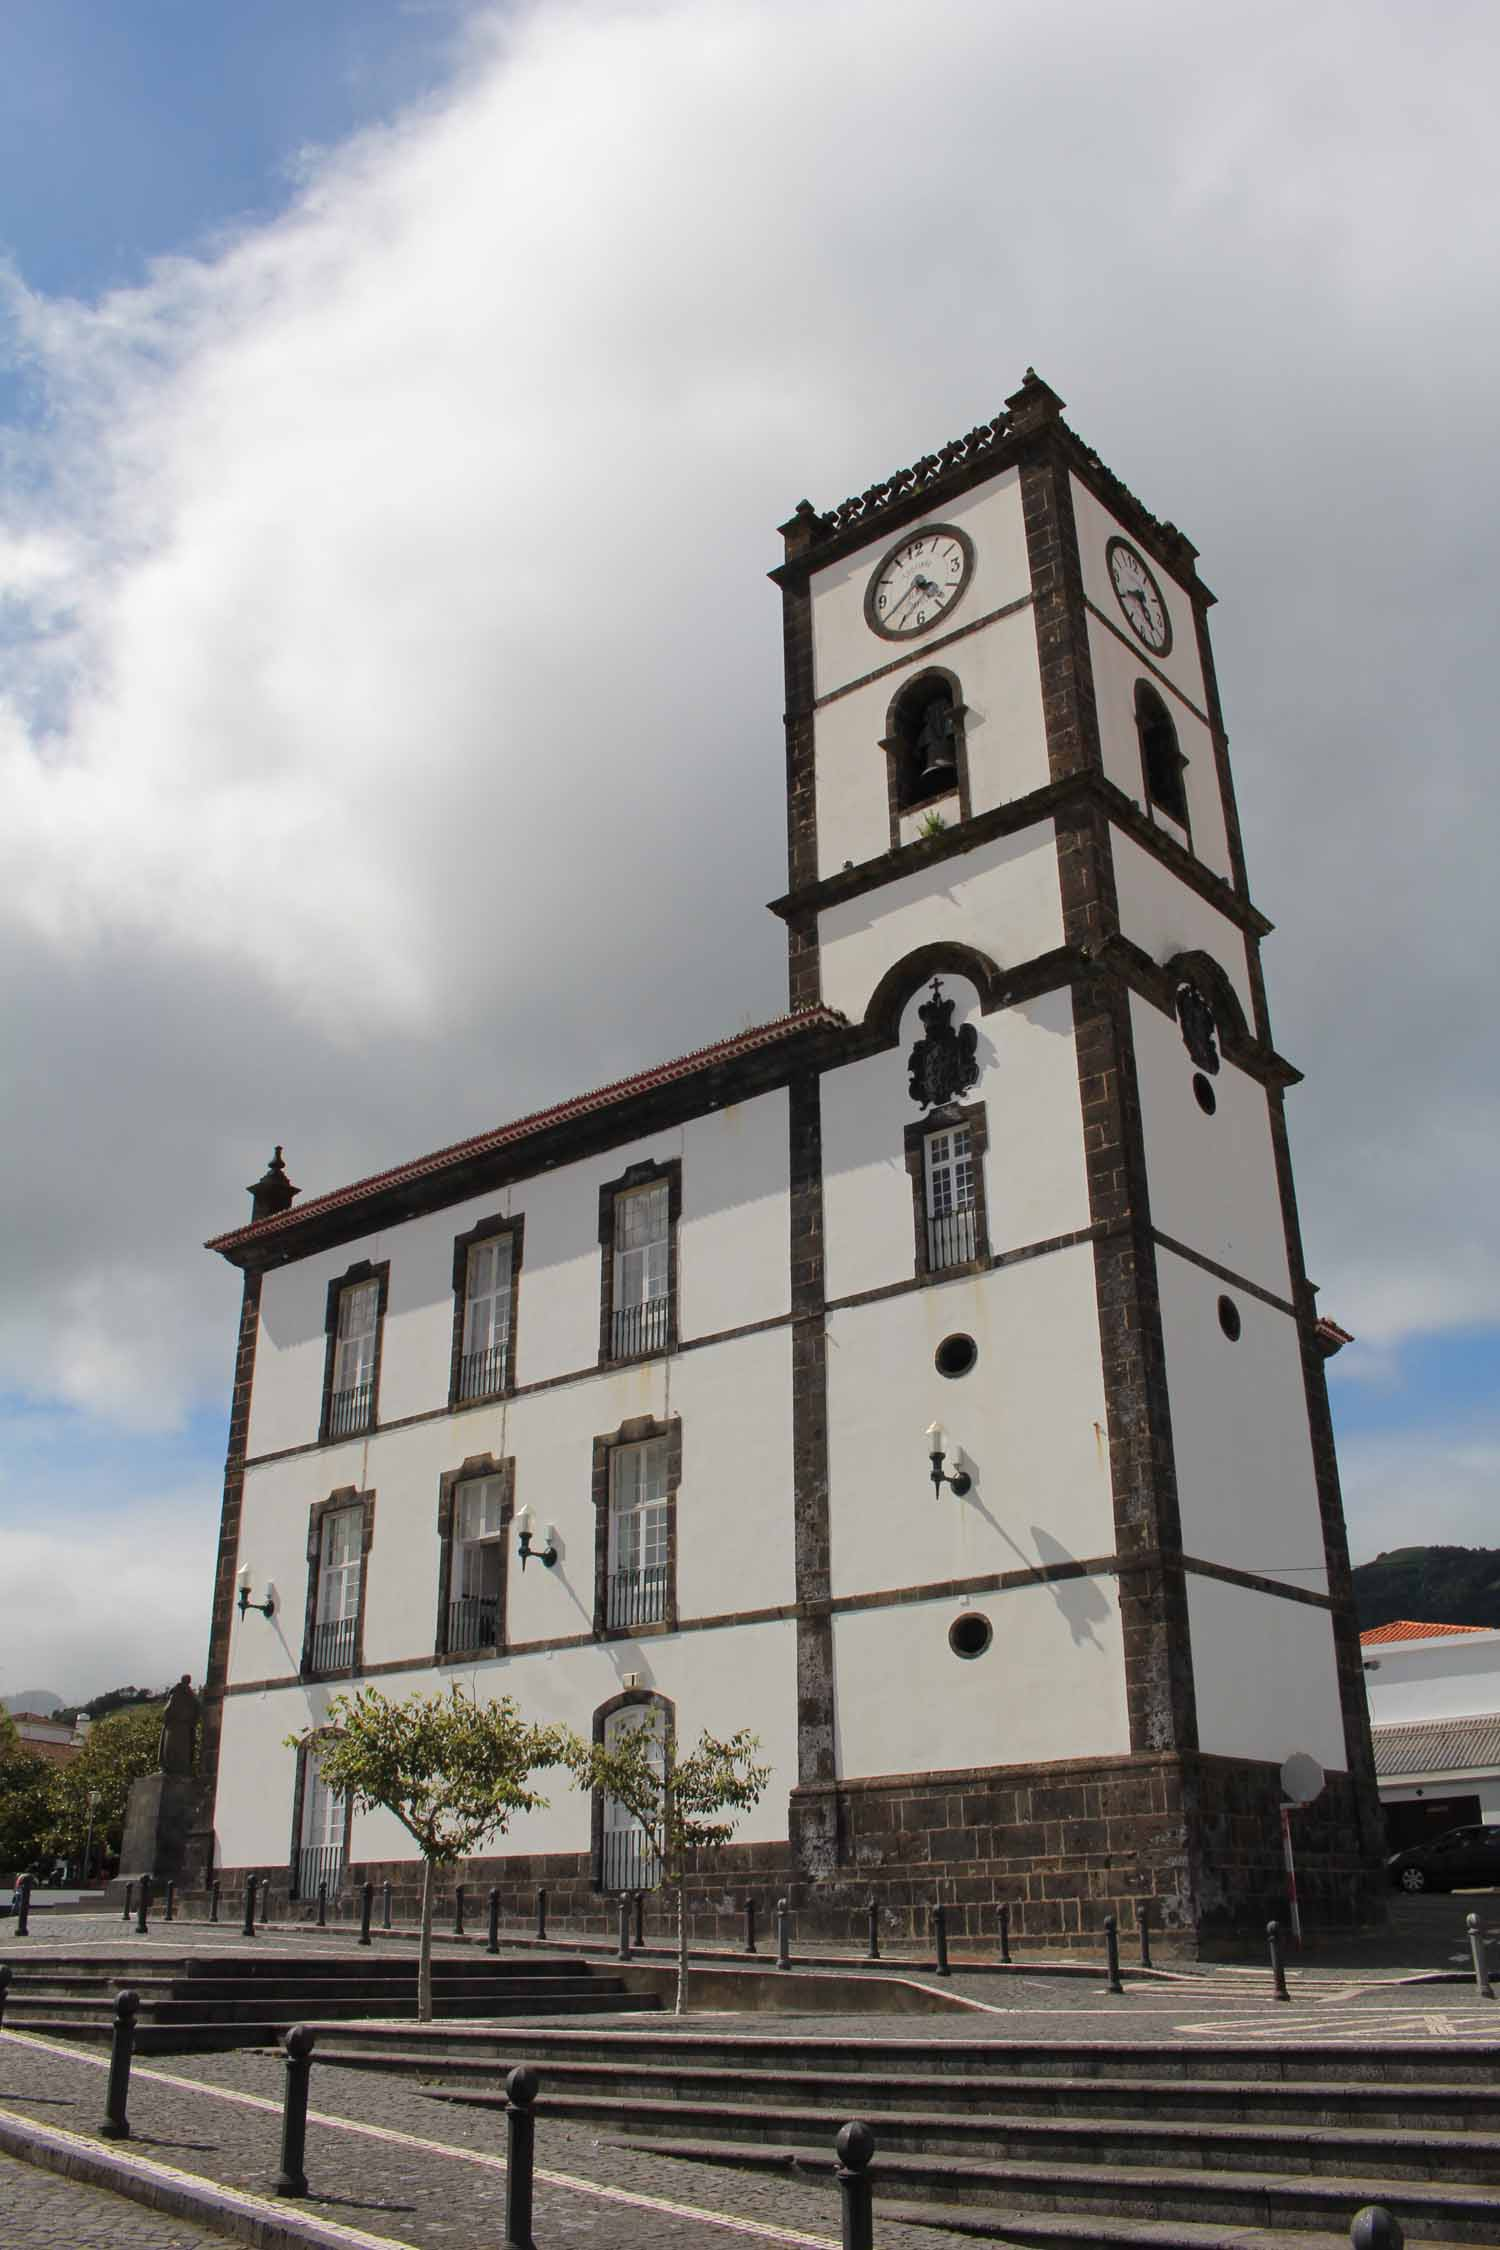 A tower and the tawn hall of Vila Franca do Campo, São Miguel island, Azores